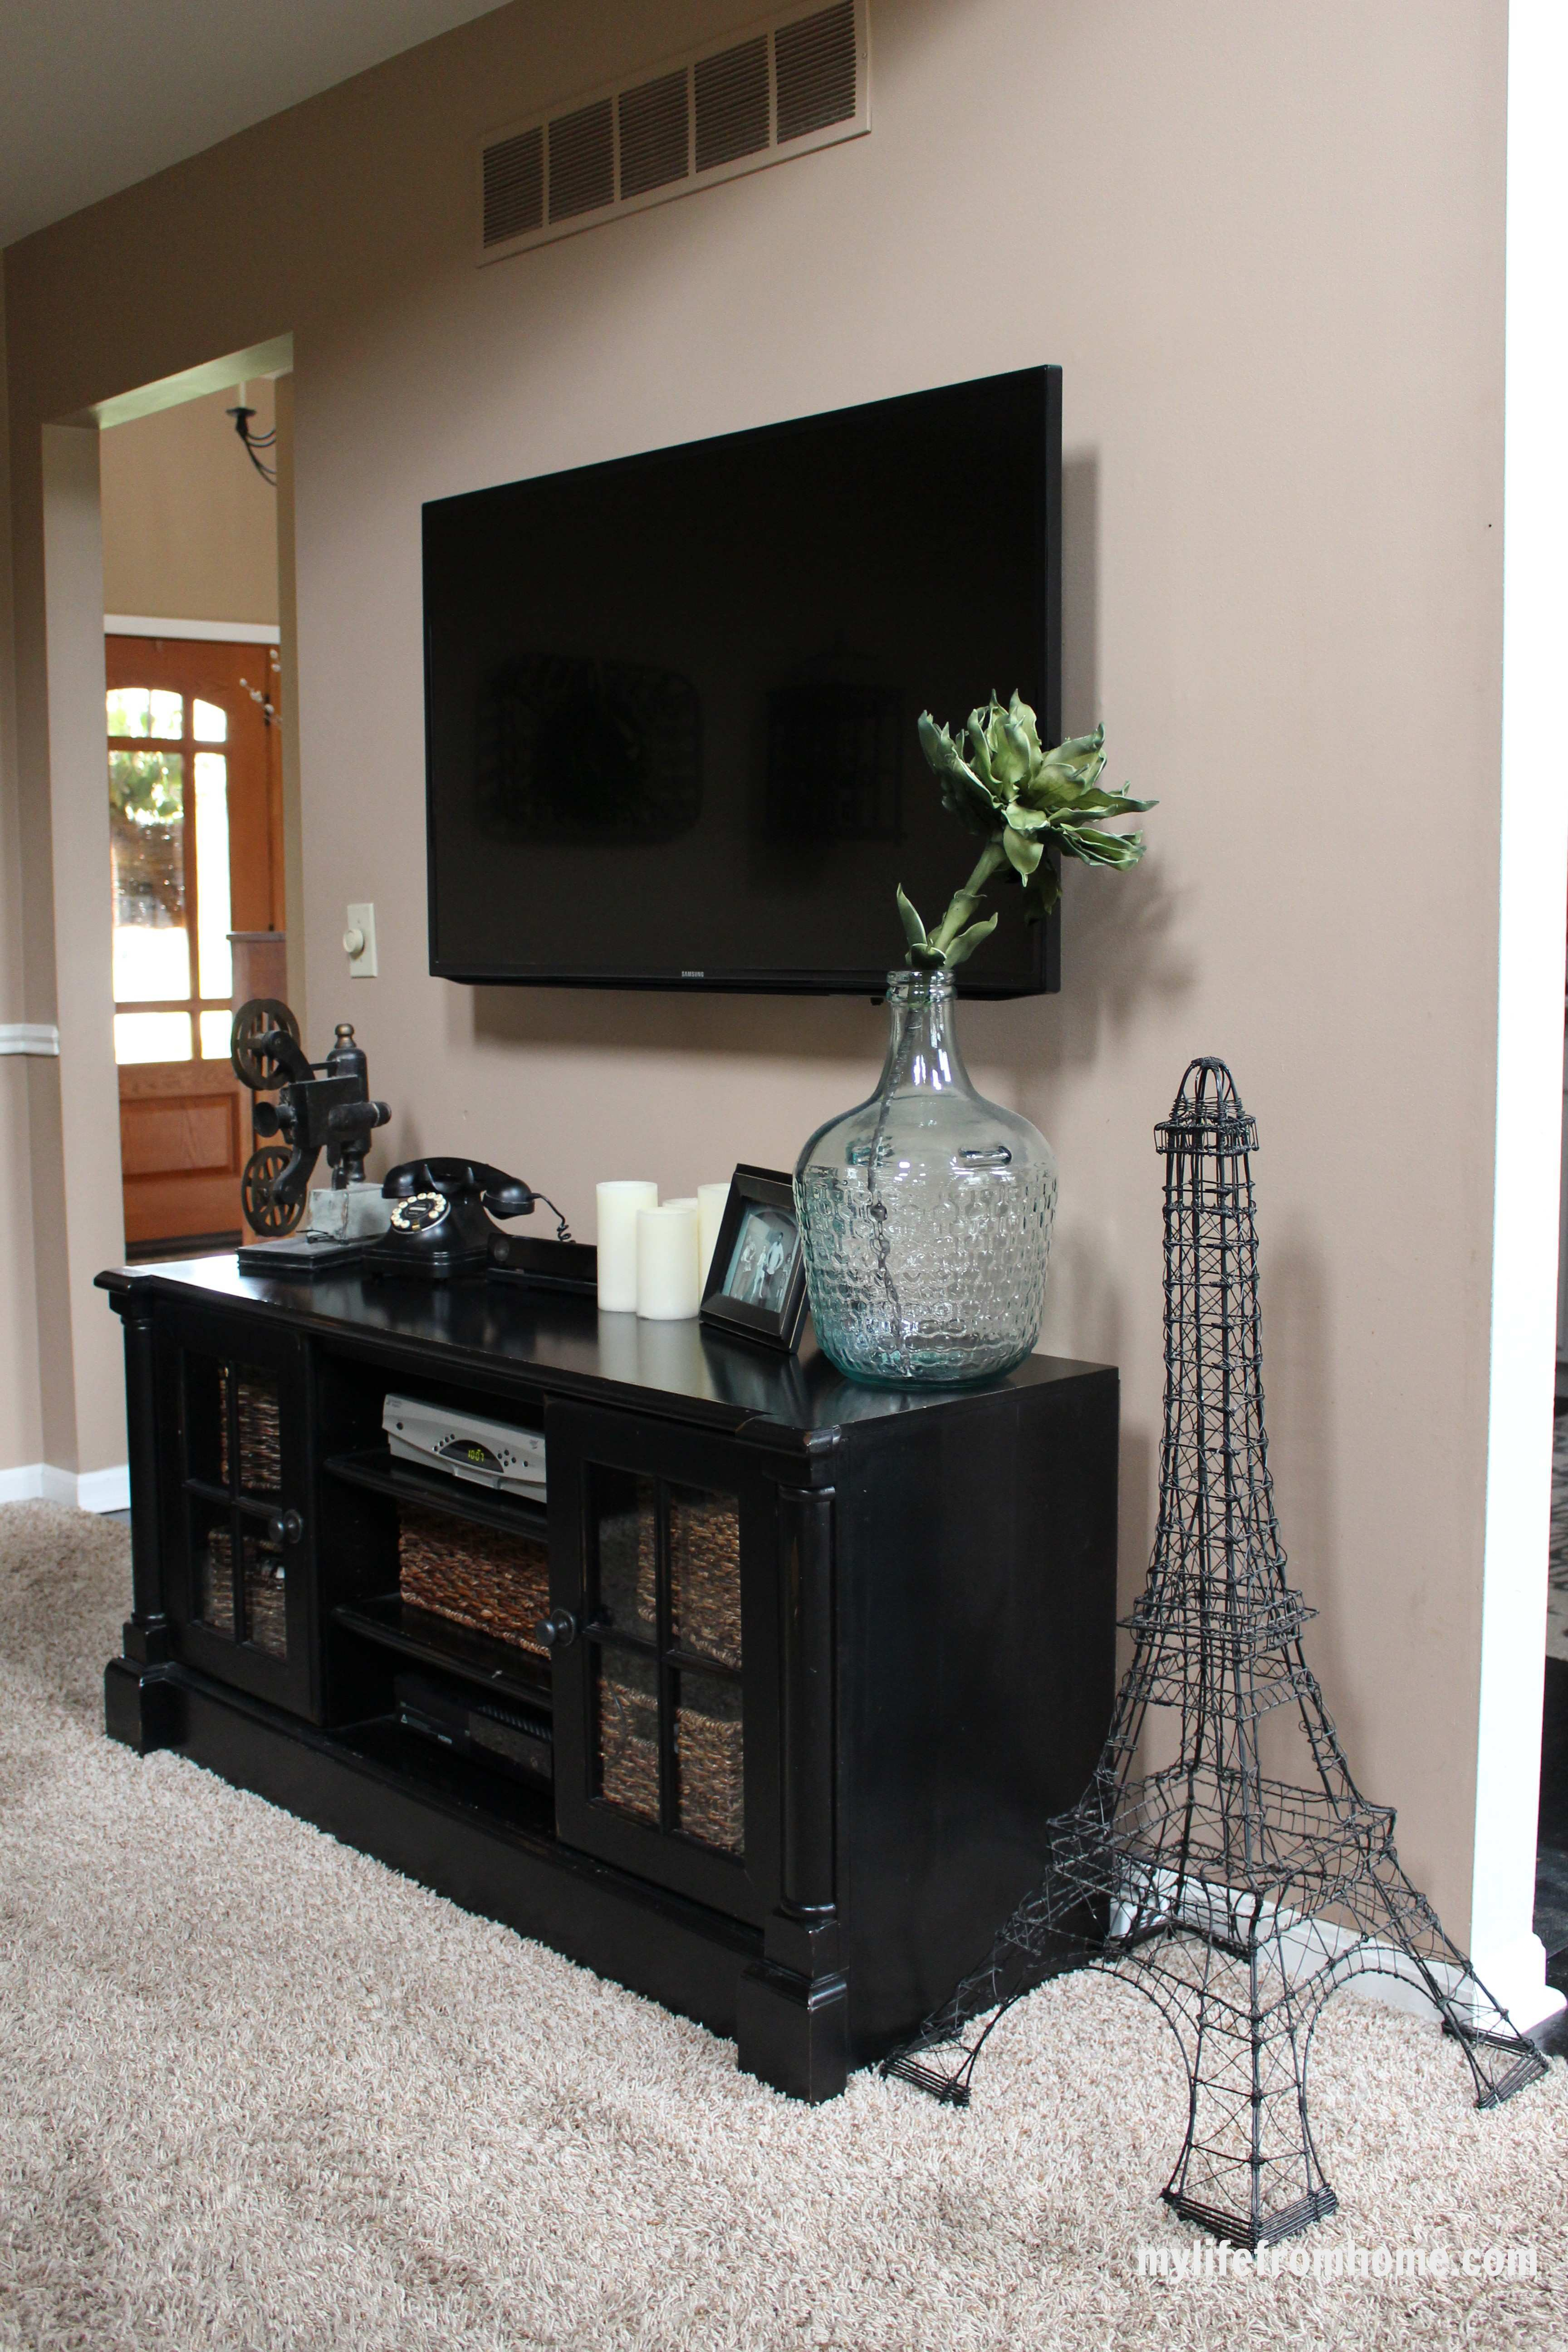 Media Center Vignette by www.mylifefromhome.com